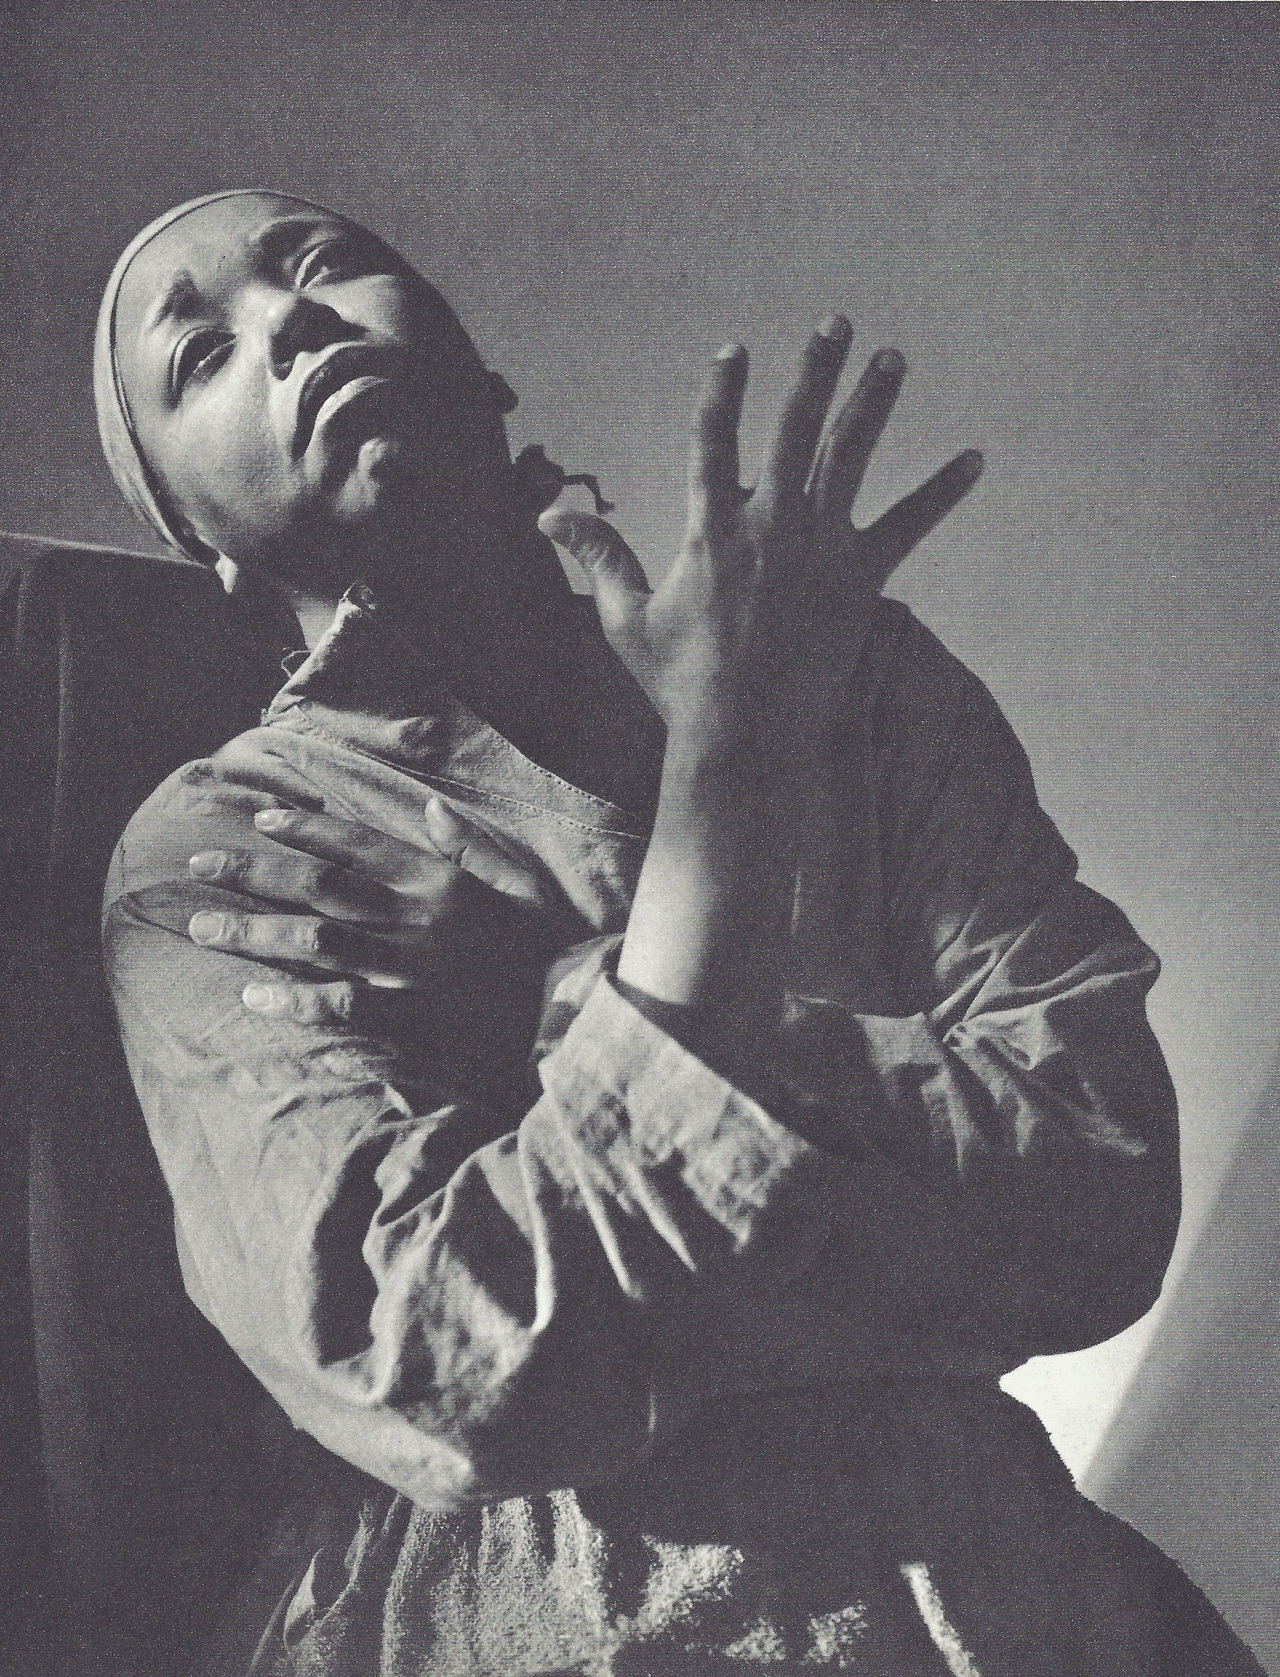 fantomas-en-cavale:  Ethel Waters dans Mamba's Daughters par Horst P. Horst, New York, 1939